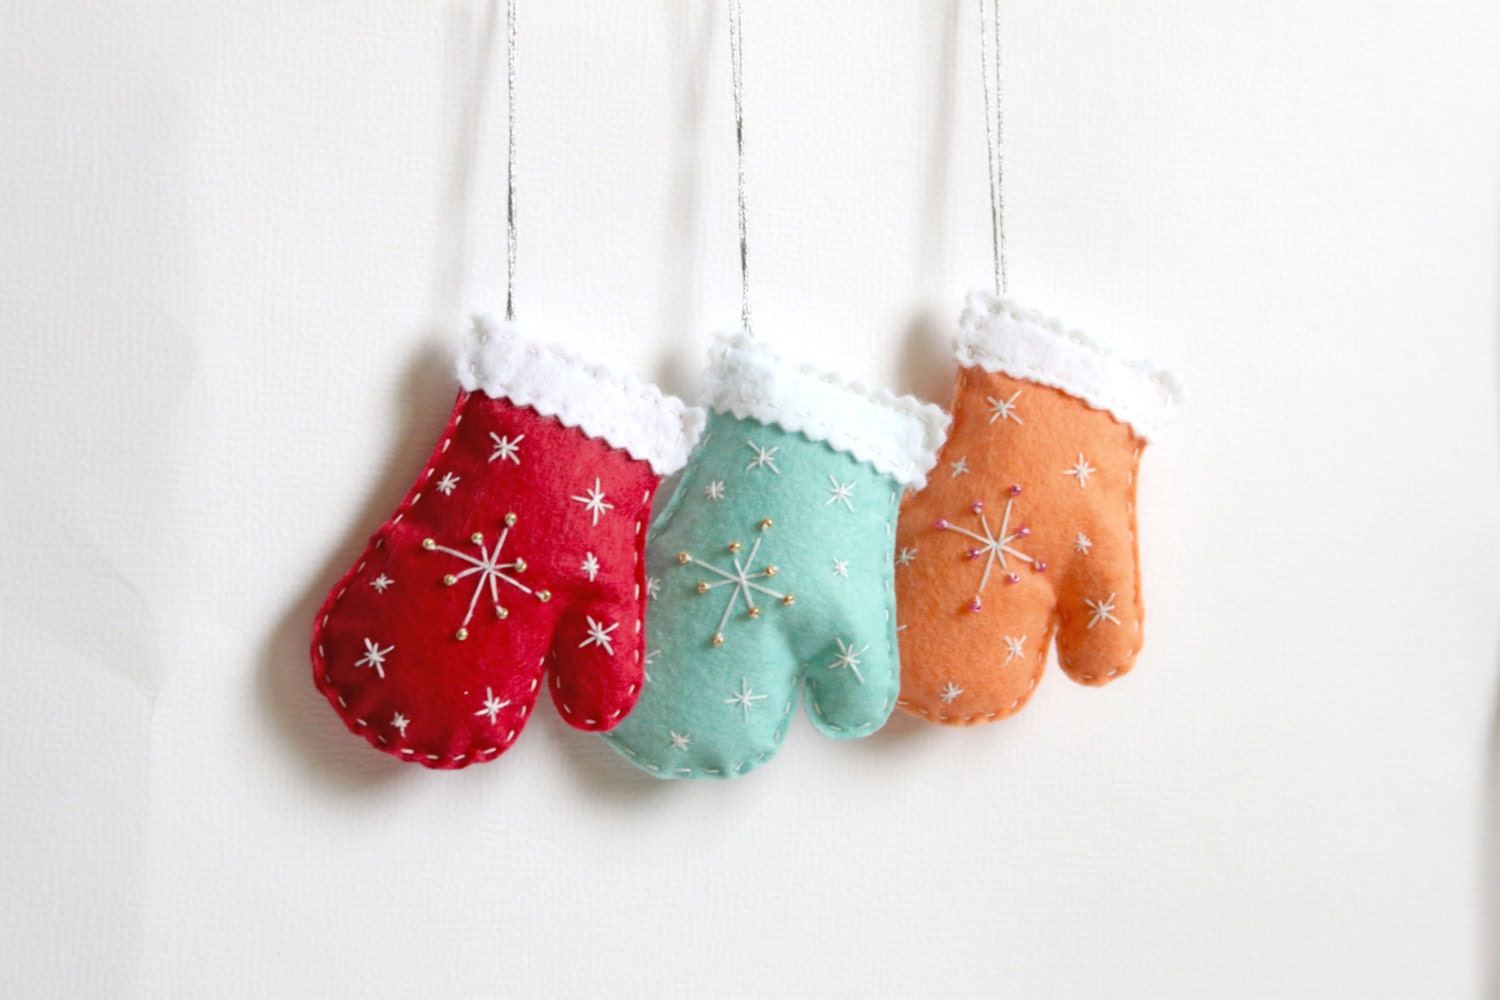 Felt mittens ornament - christmas home decor - set of 3 - ready to ship - MiracleInspiration